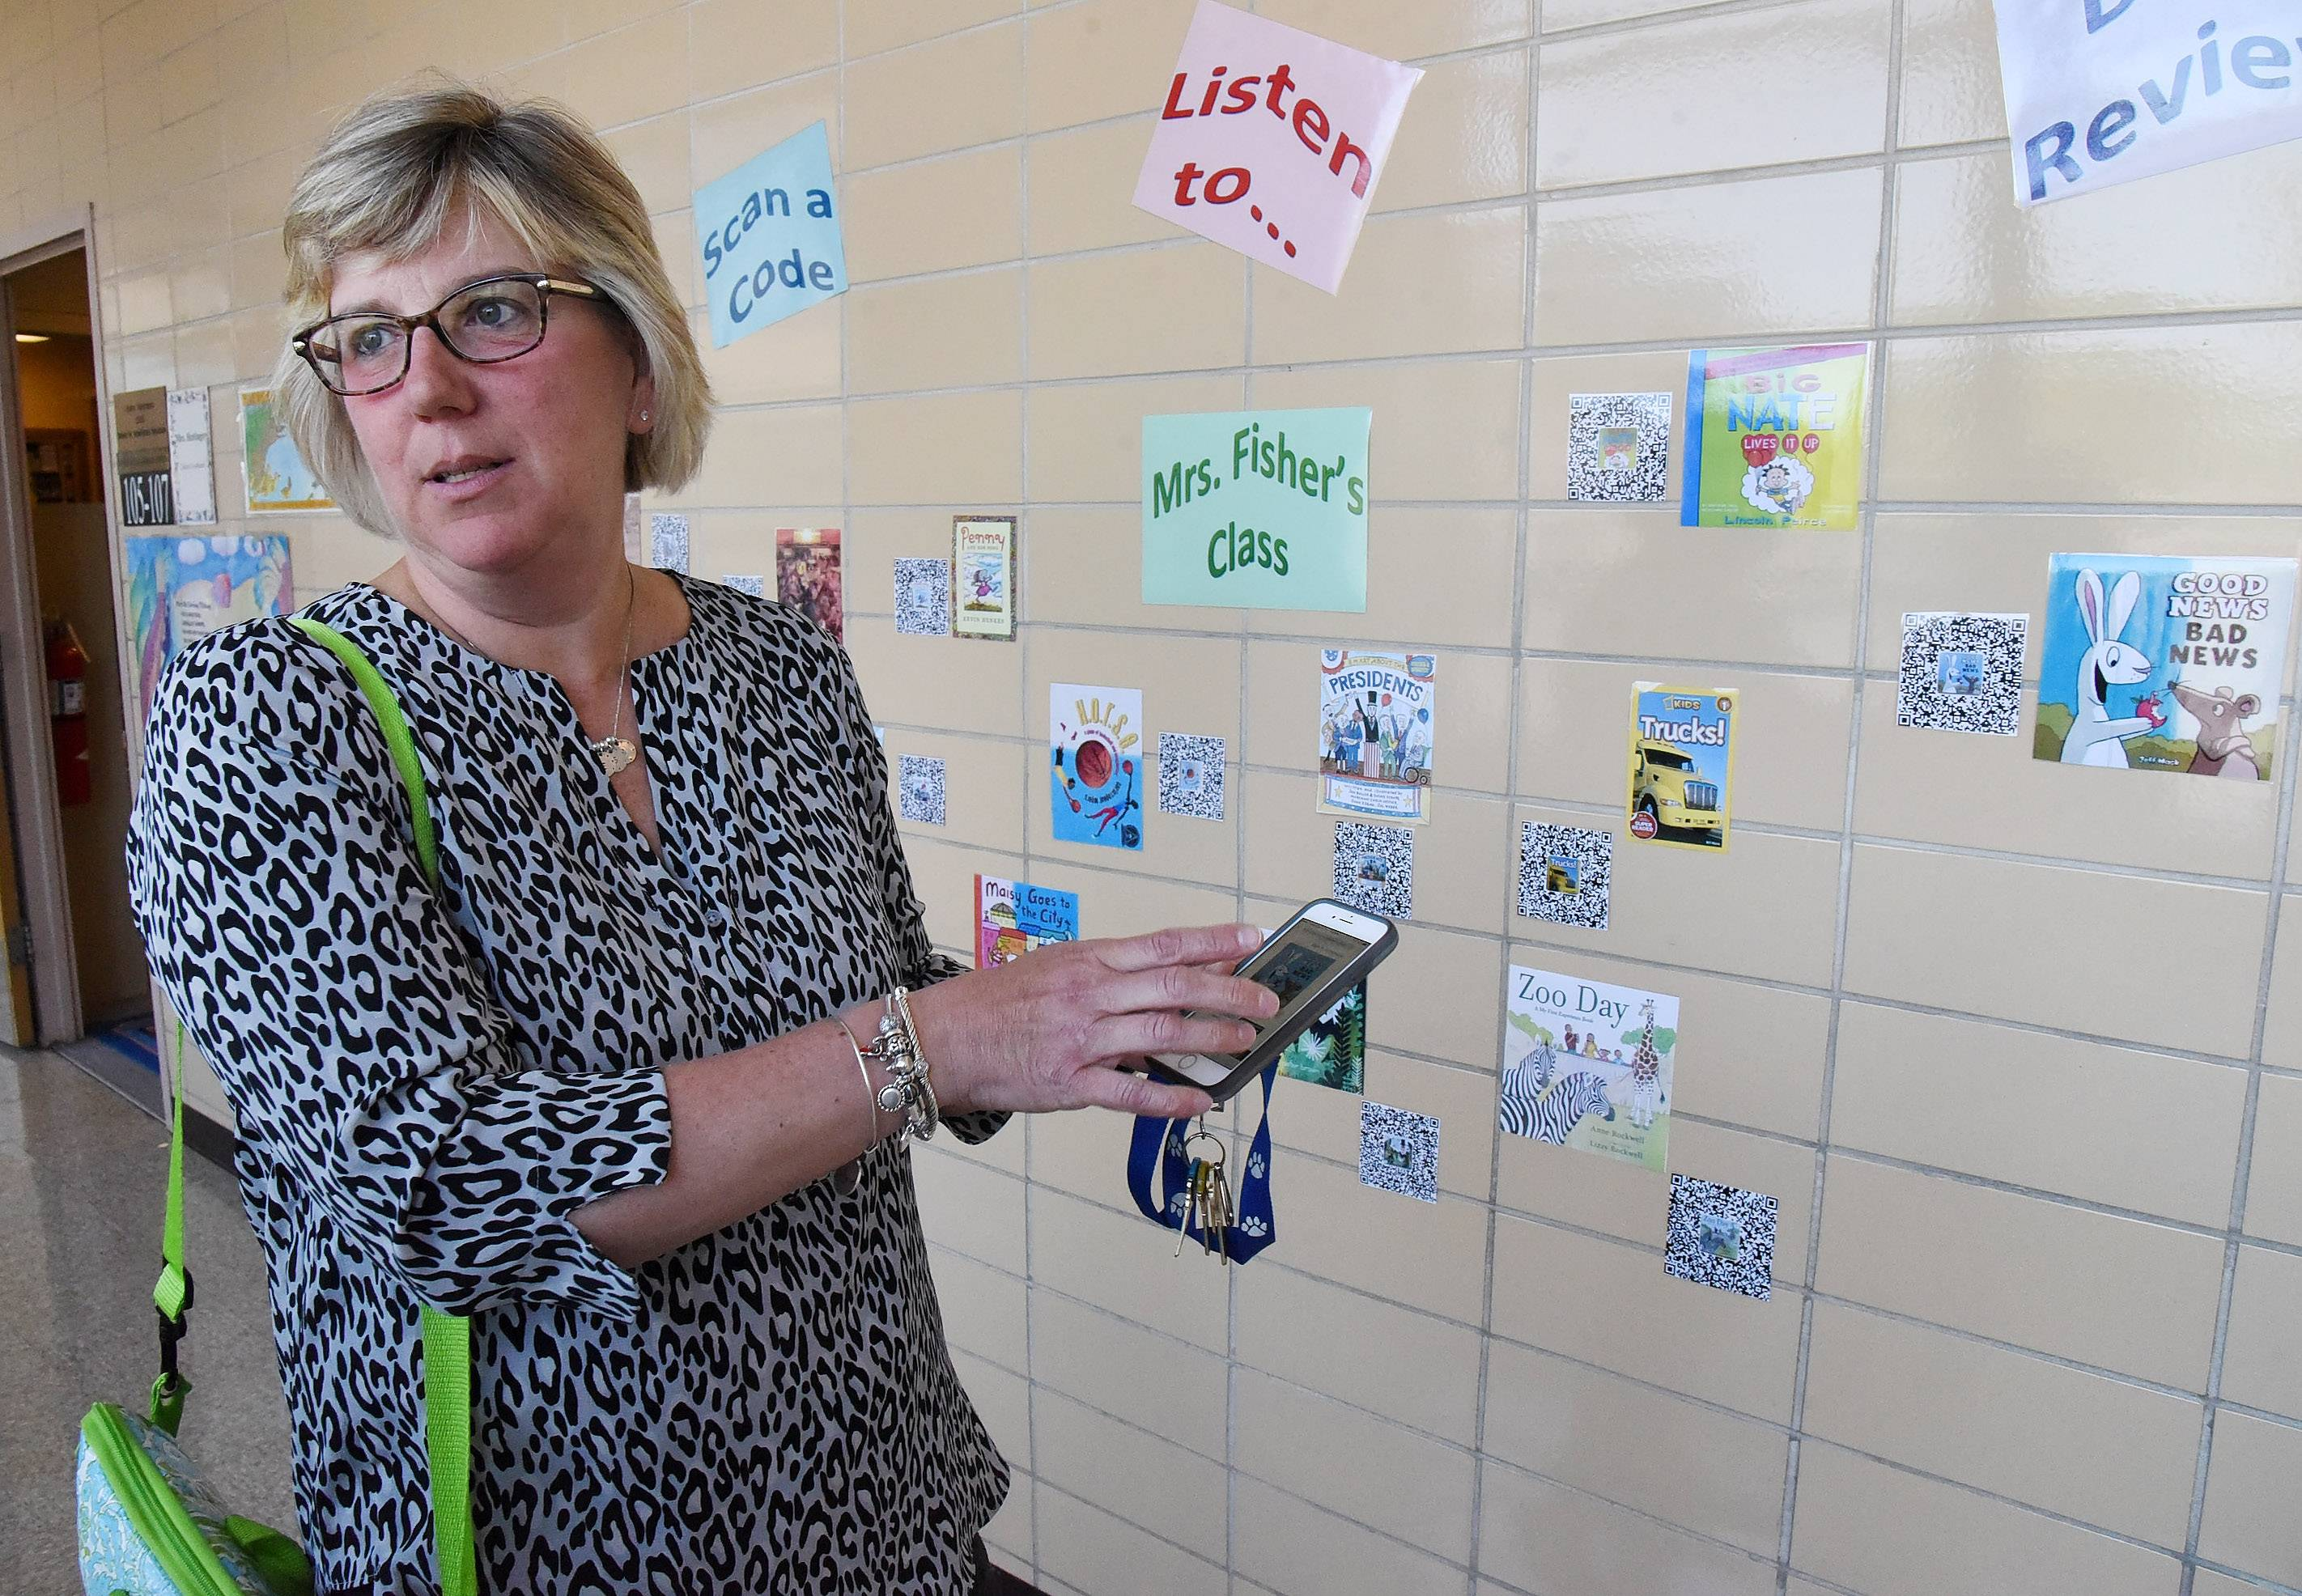 Chris Bremner explains how she helped elementary students record book reviews that can be accessed through QR codes at her Scan a Code wall.